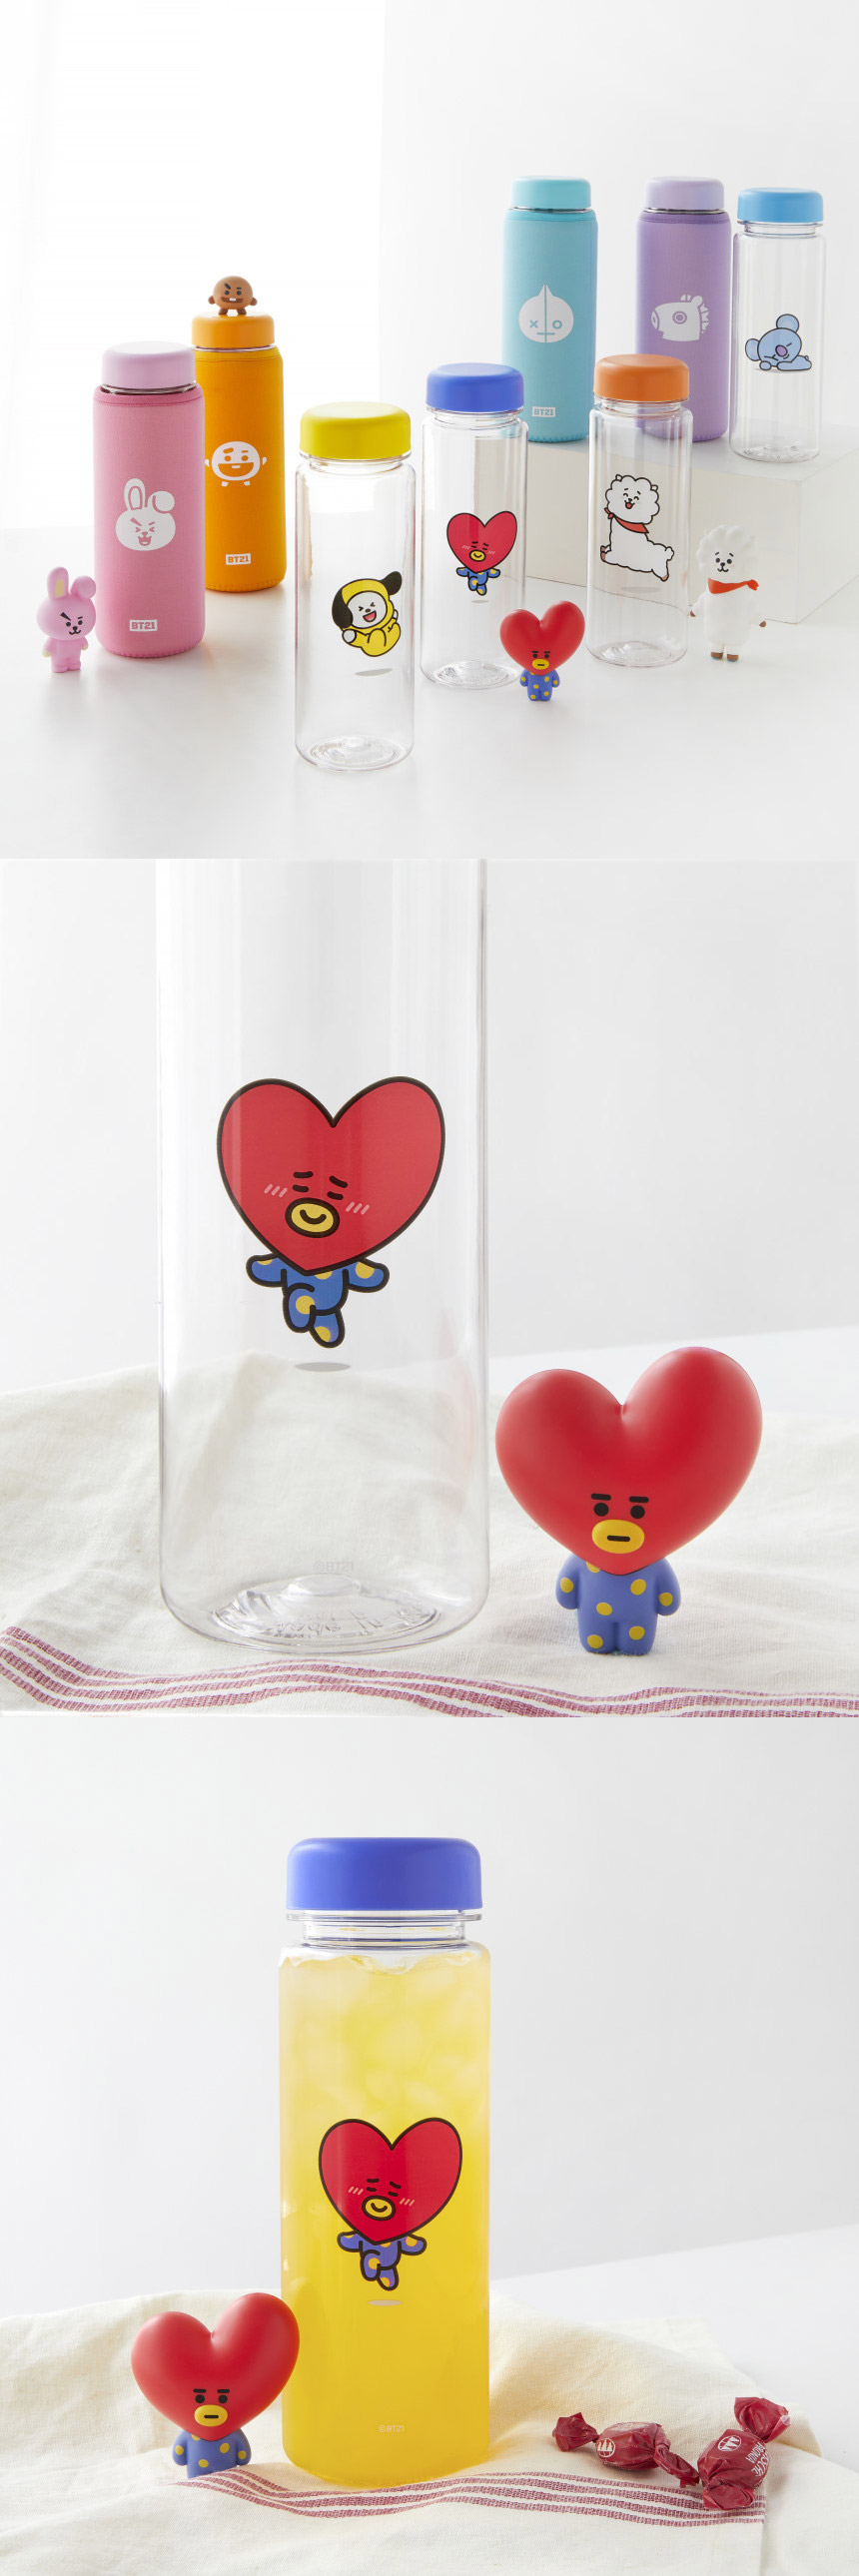 bt21_tritan_bottle_01.jpg